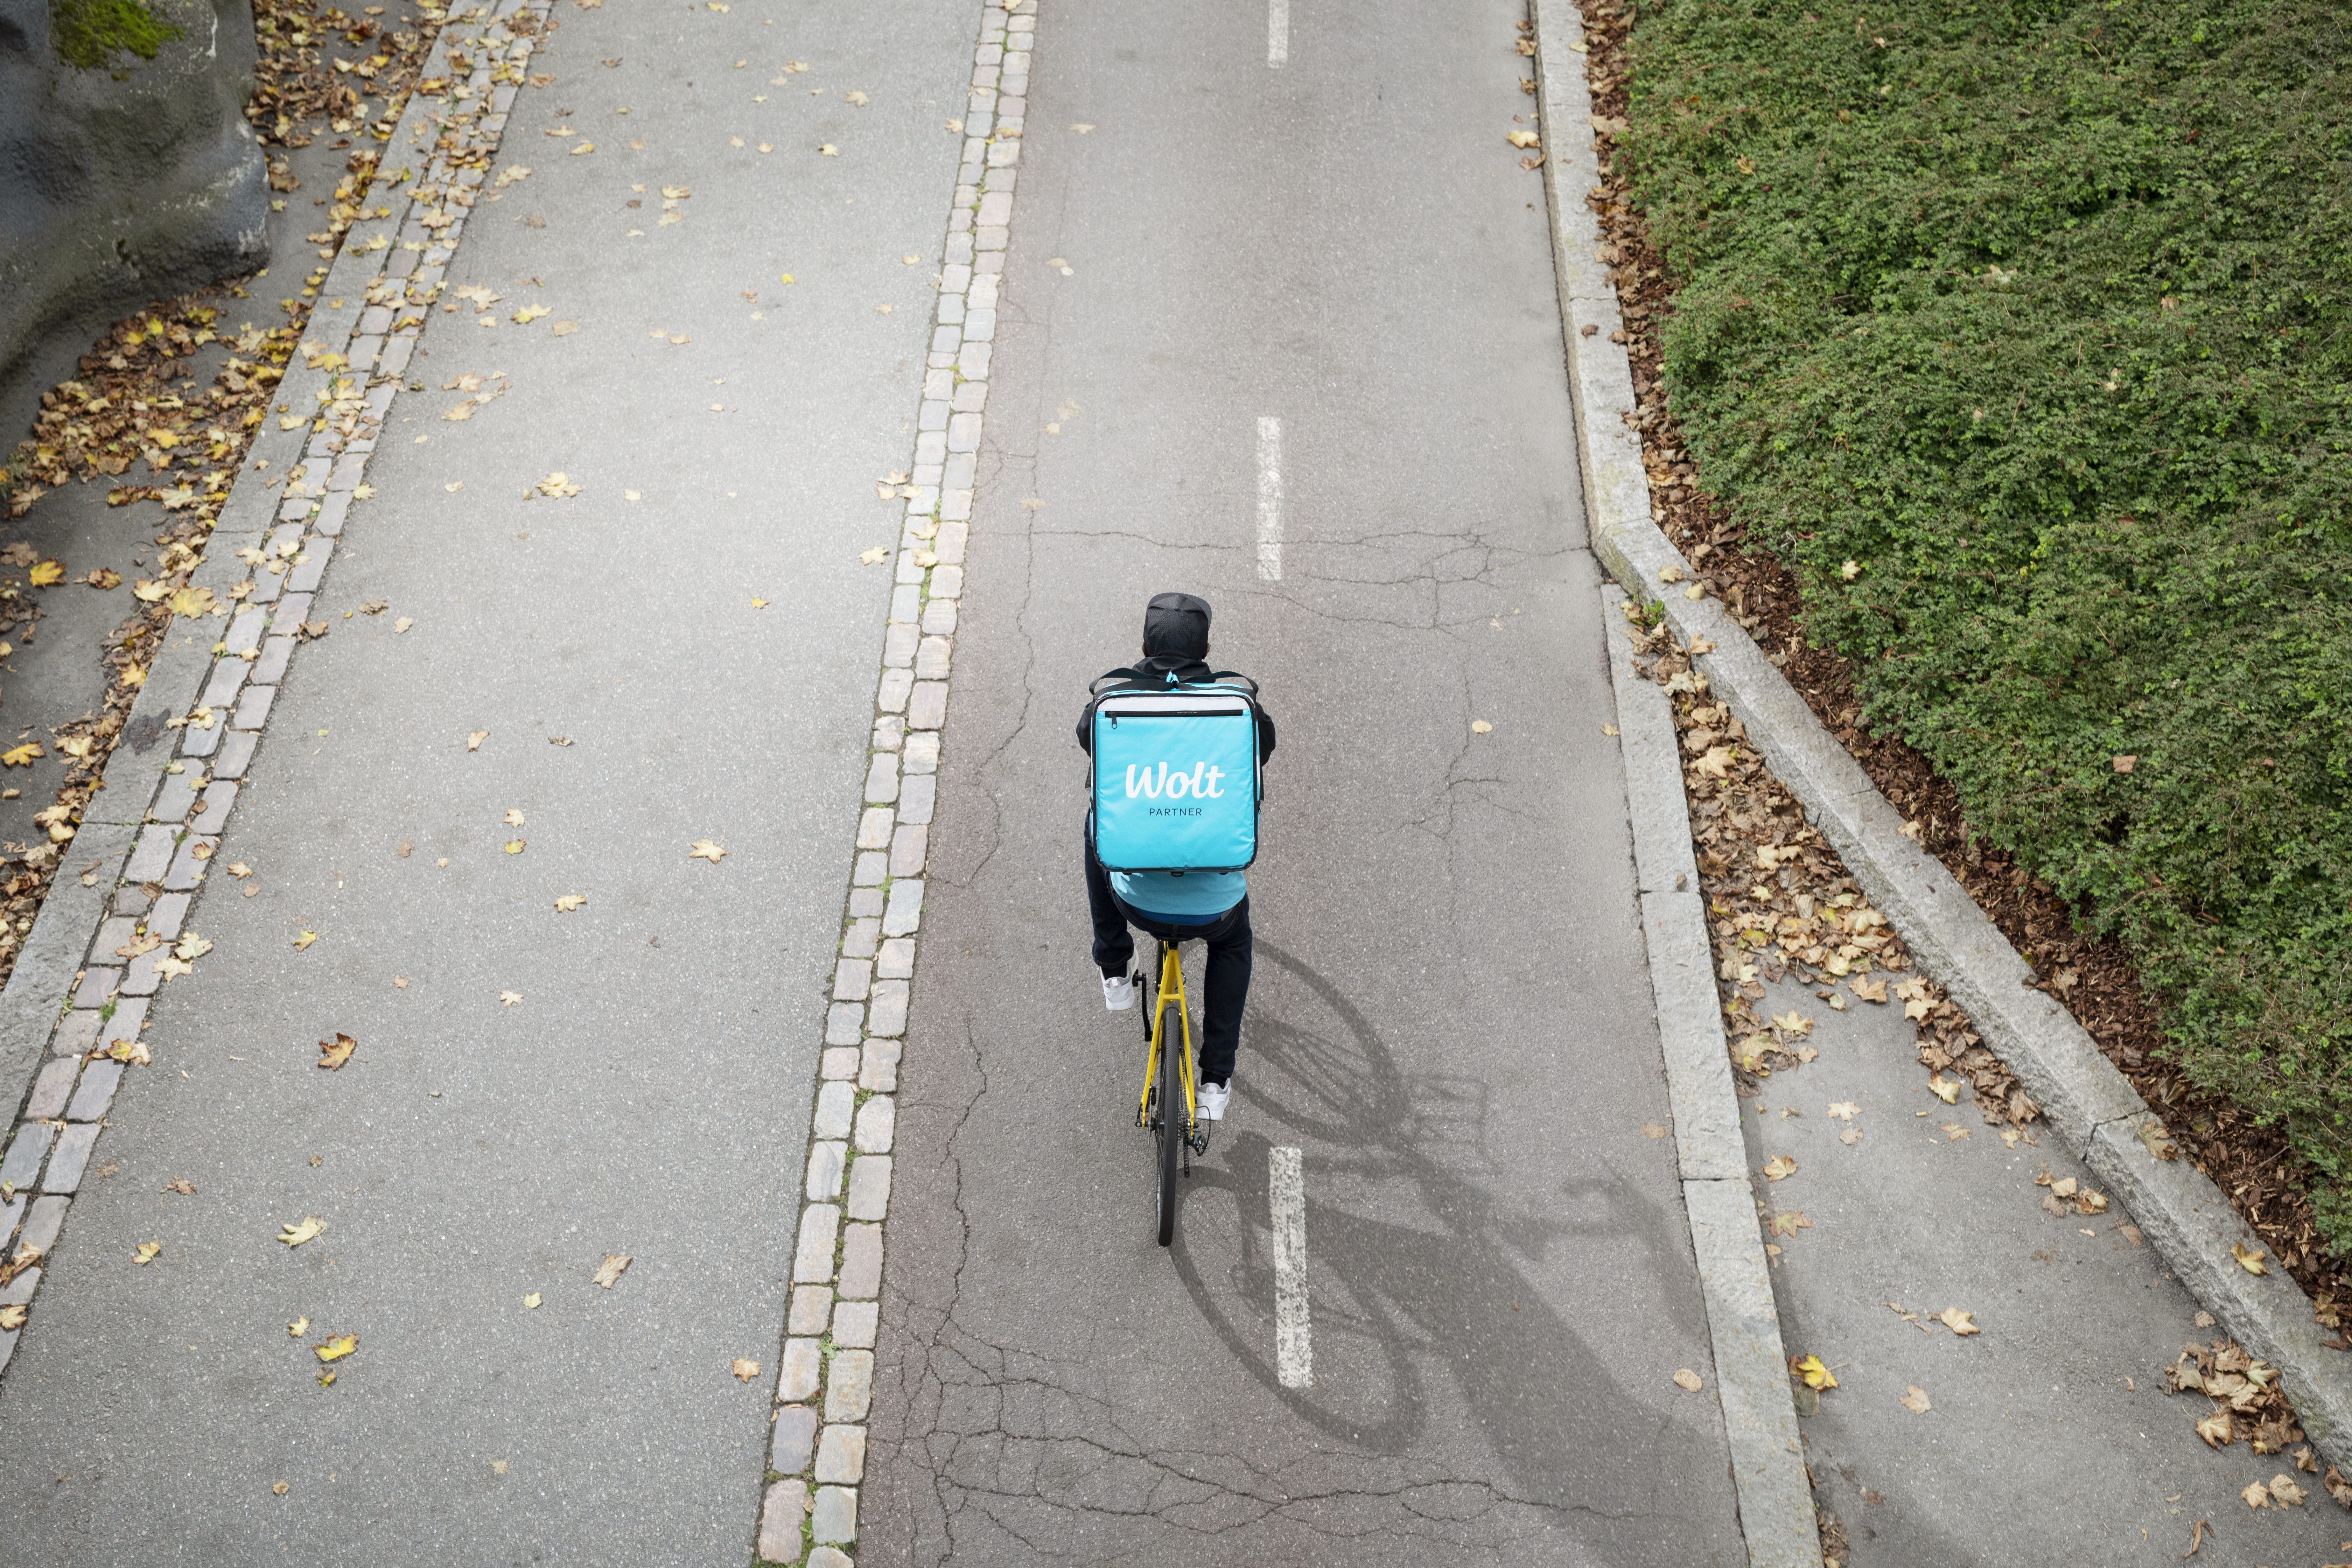 Wolt_Courier_Bicycle_2.jpg